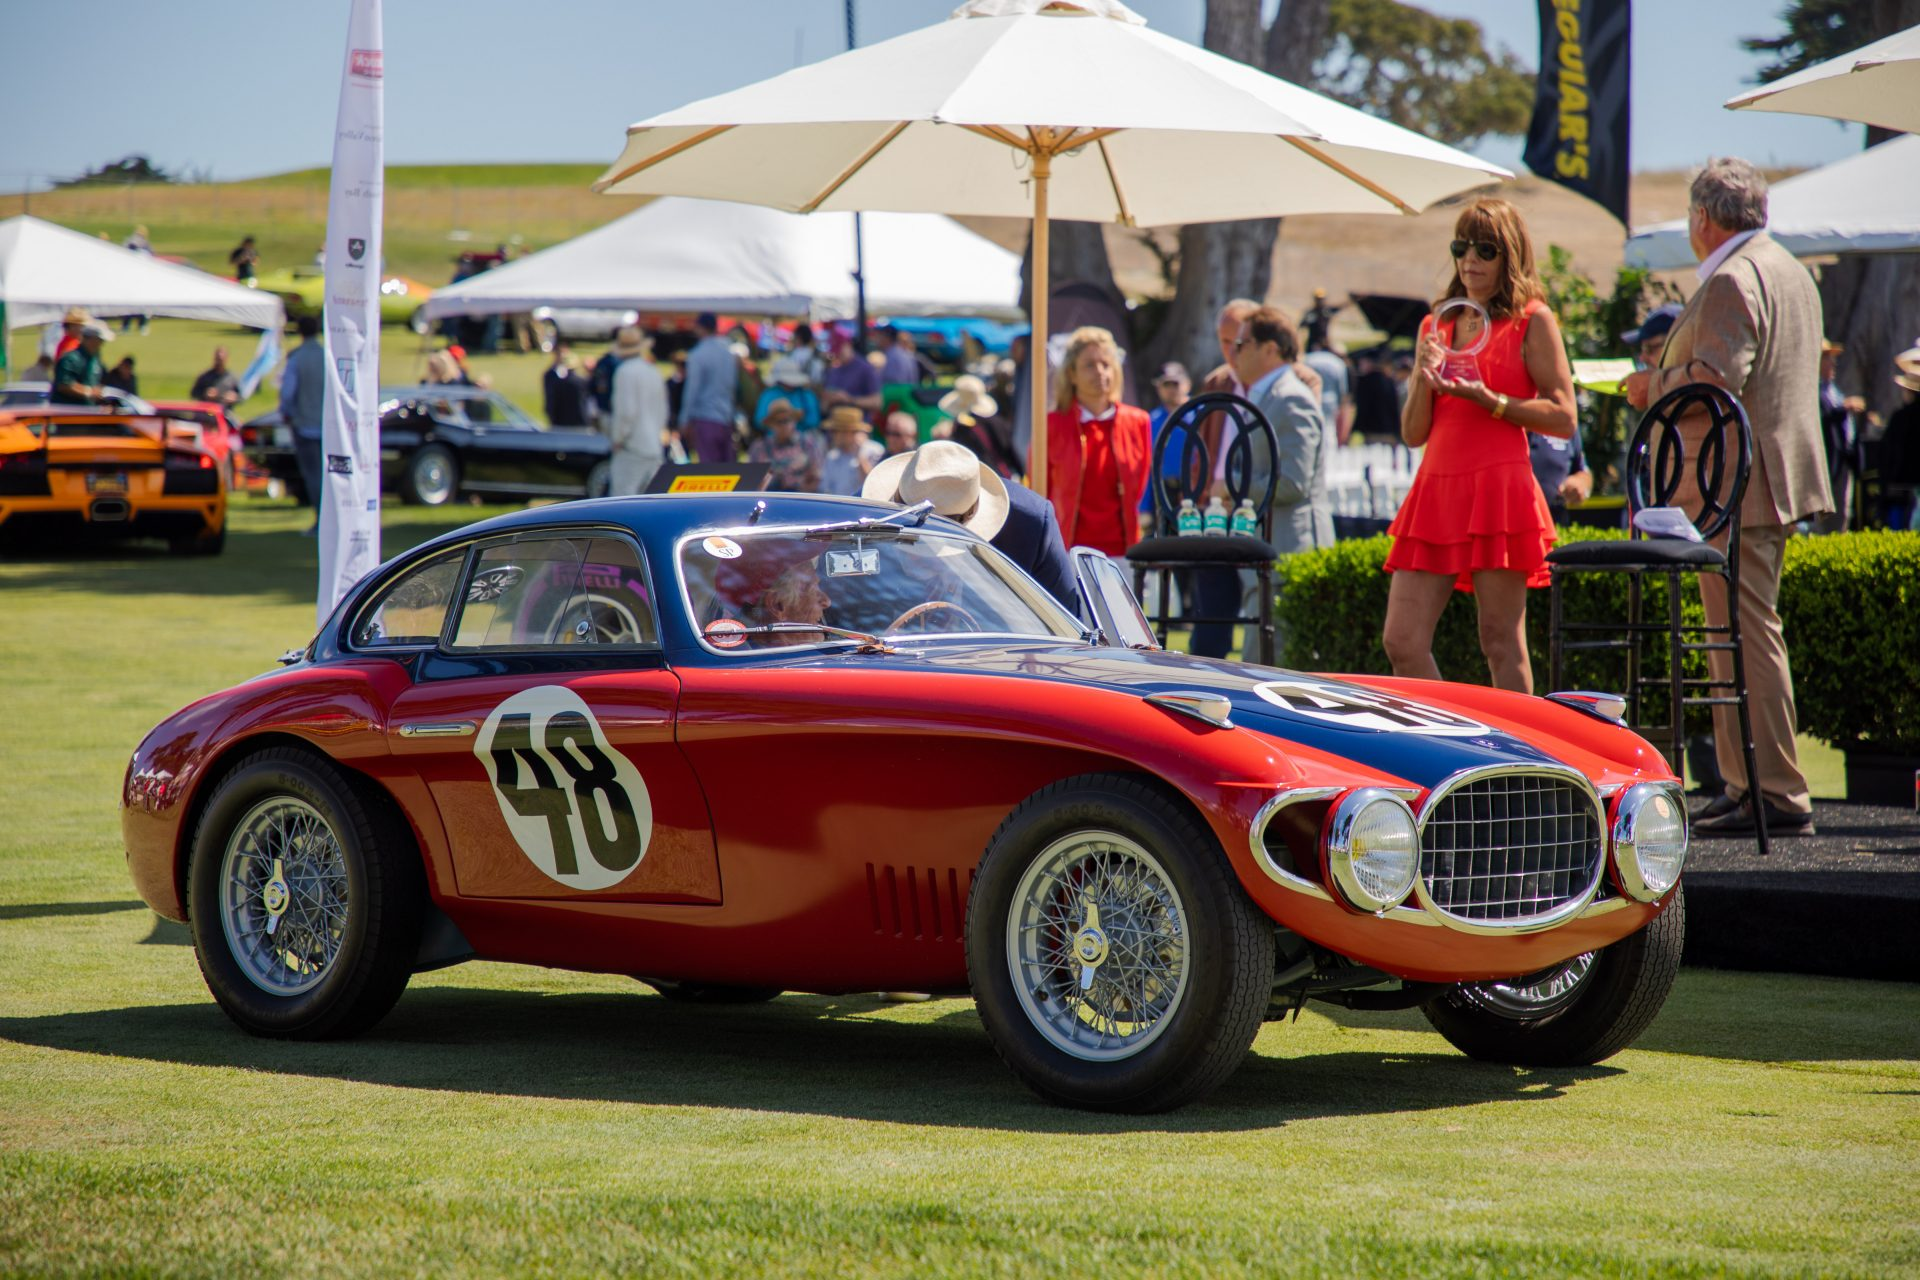 1st place Special Coachworks: 1952 OSCA MT4LM owned by Phil White from Portola Valley, CA